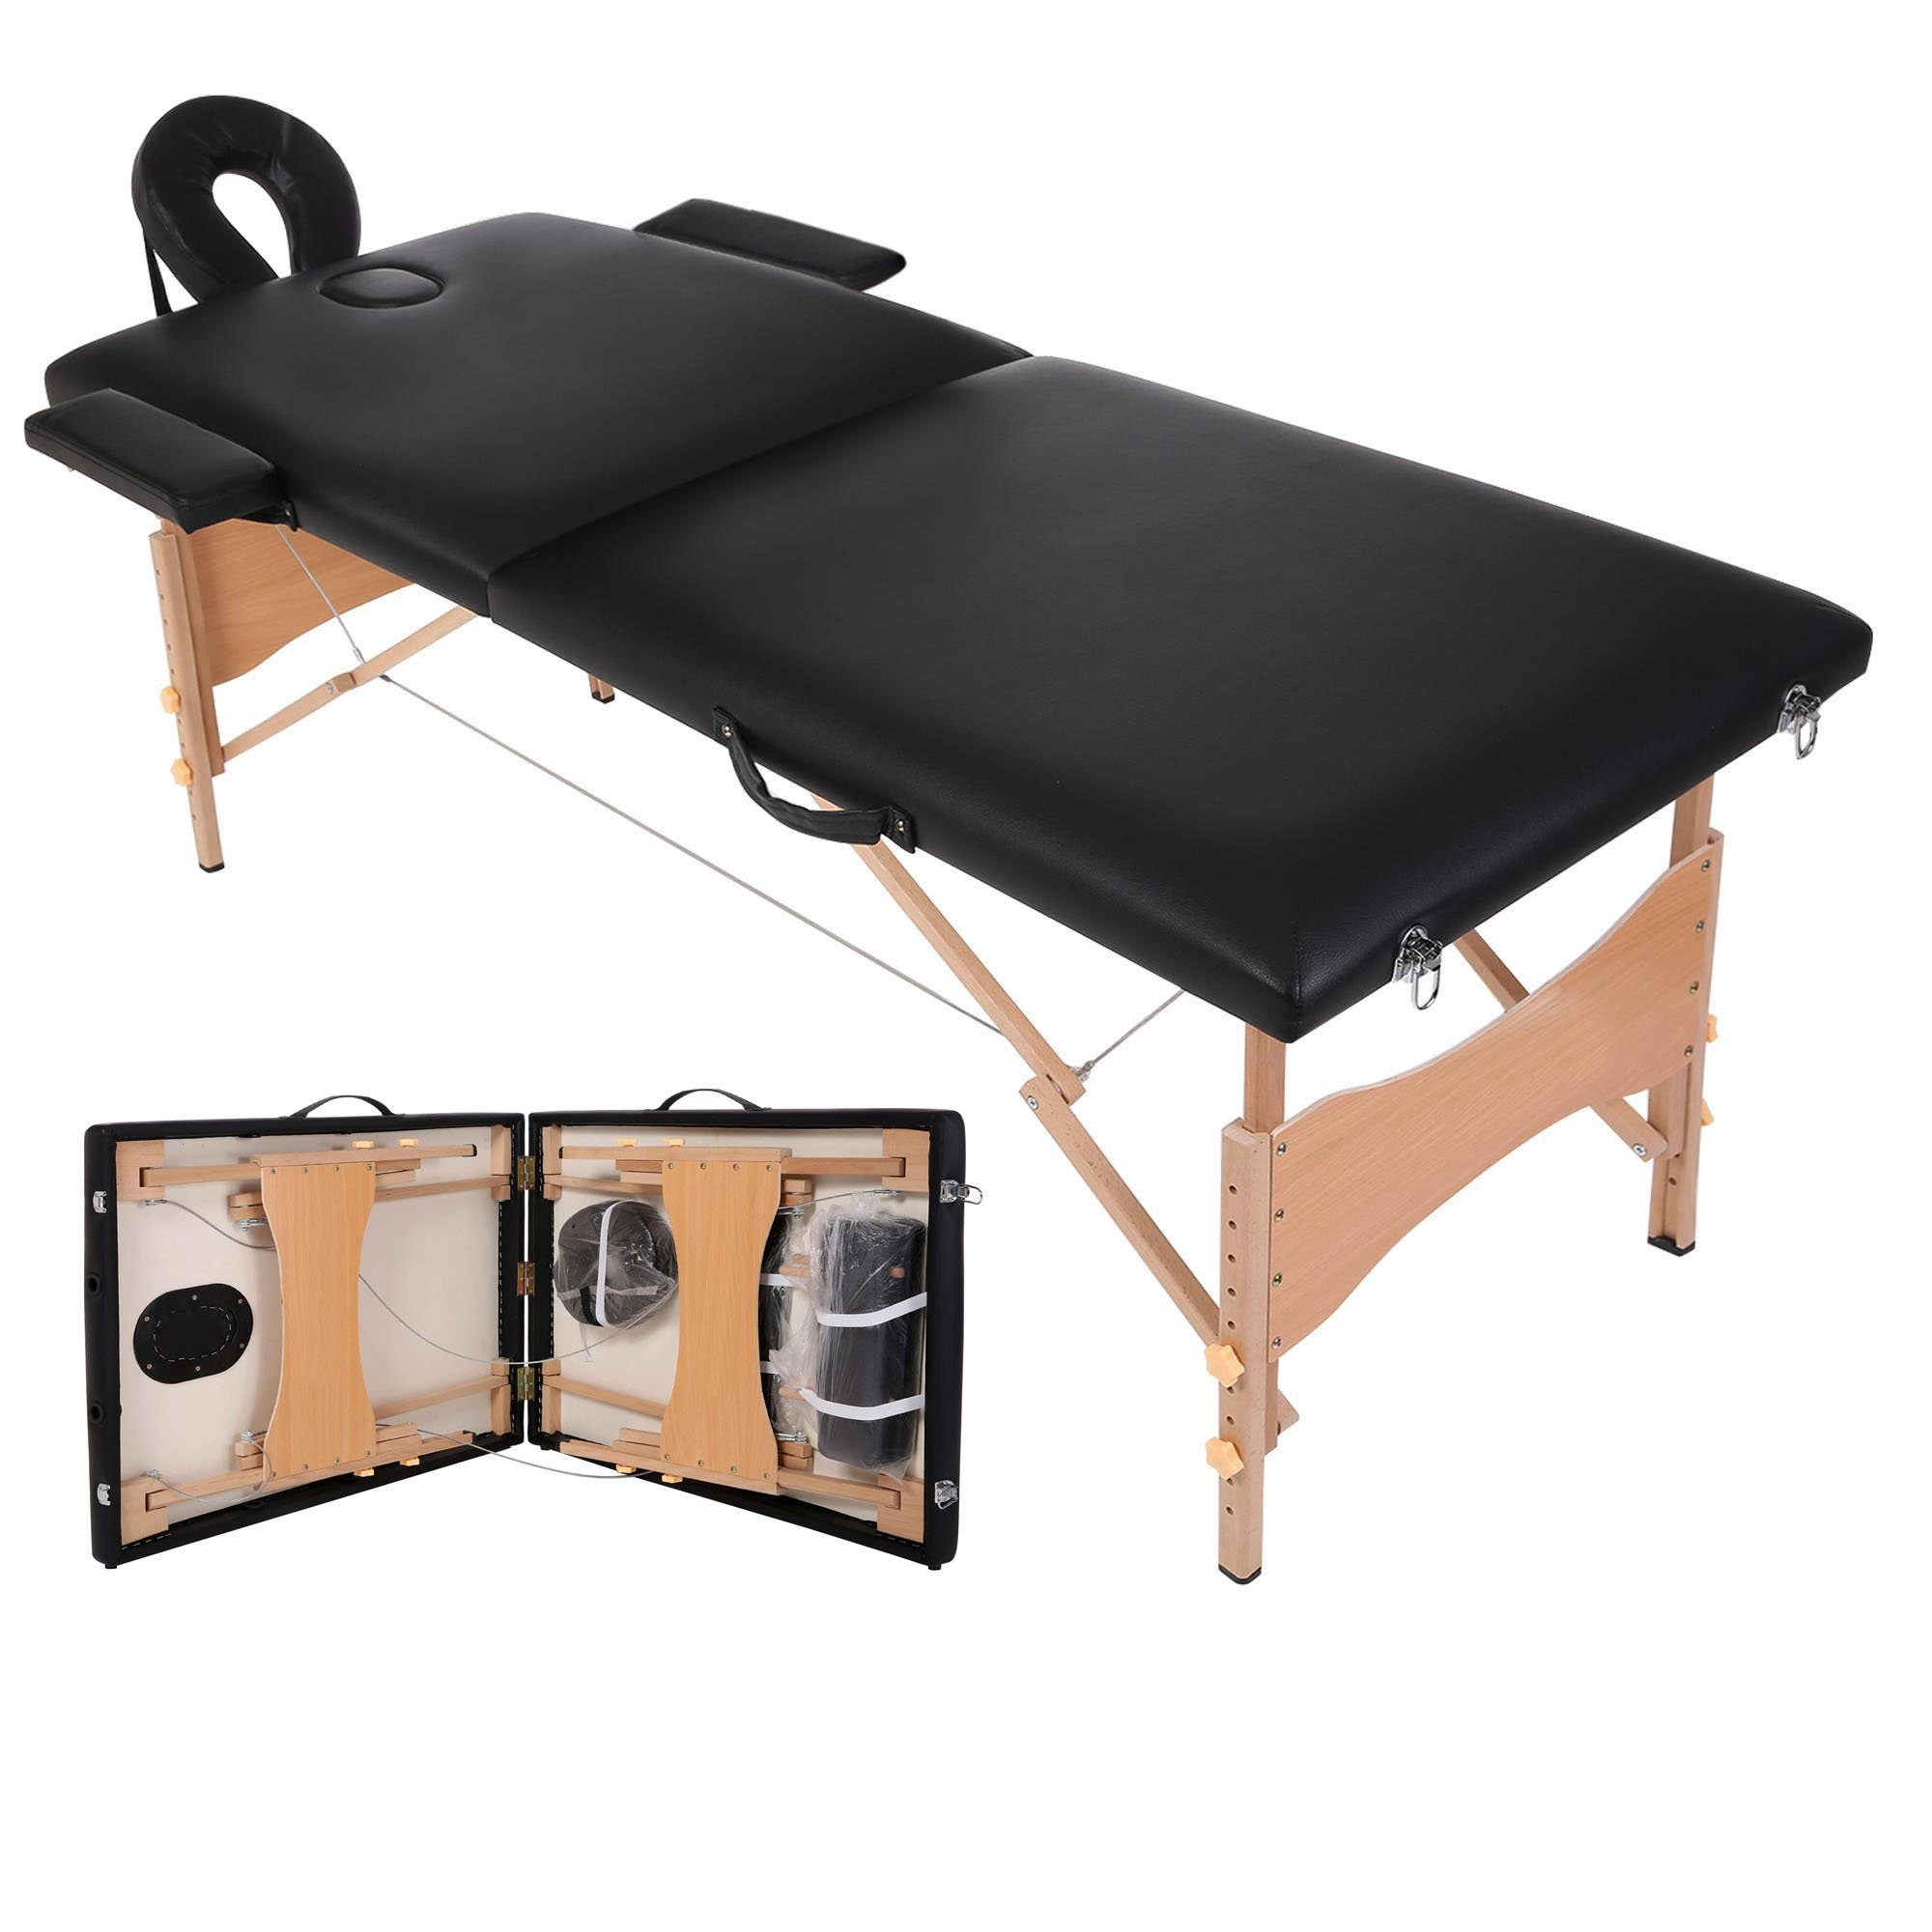 Portable Massage Table Facial Spa Bed Two-Fold Pad Chair Free Carry Case with Adjustable Headrest+ Free Face Pillow+2 Bolsters [US Stock]